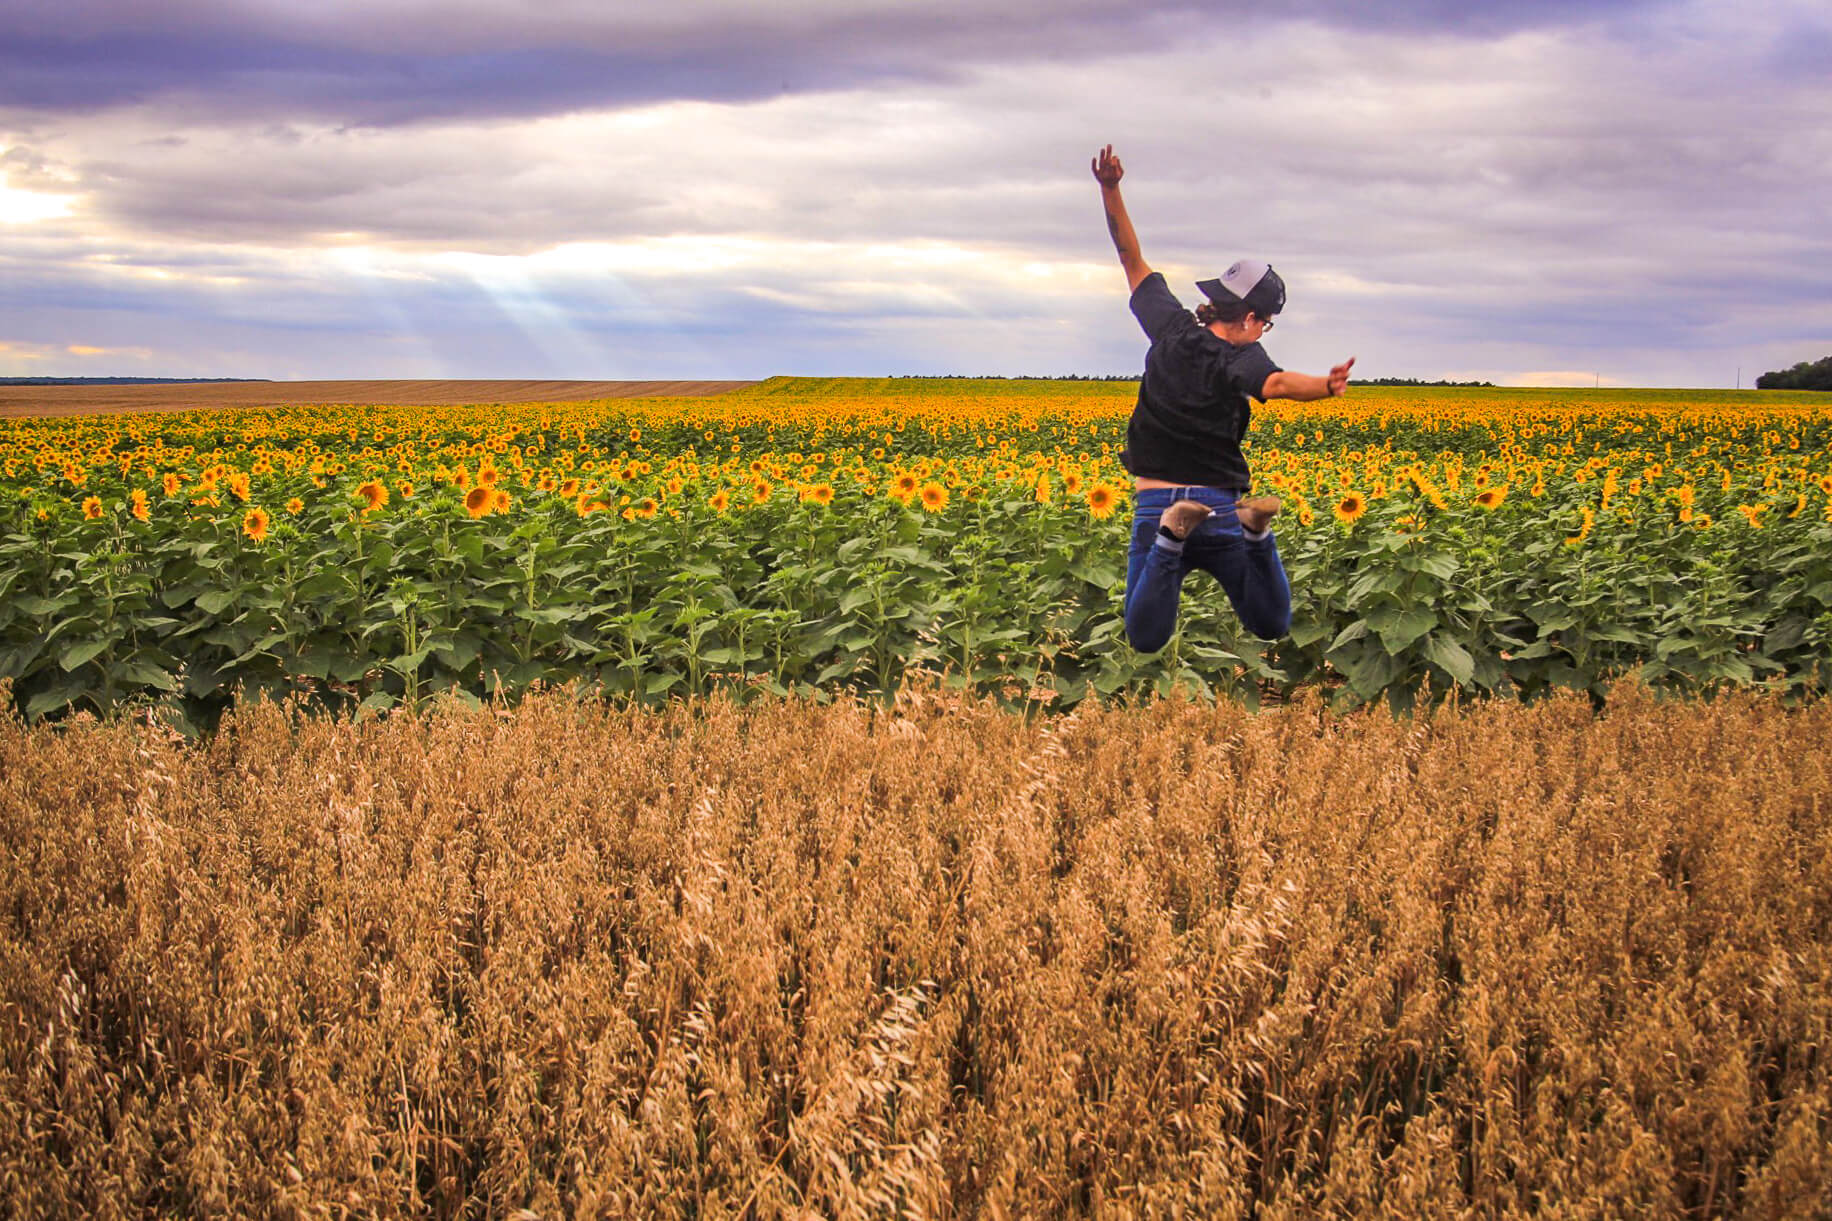 Ash jumping near sunflower field